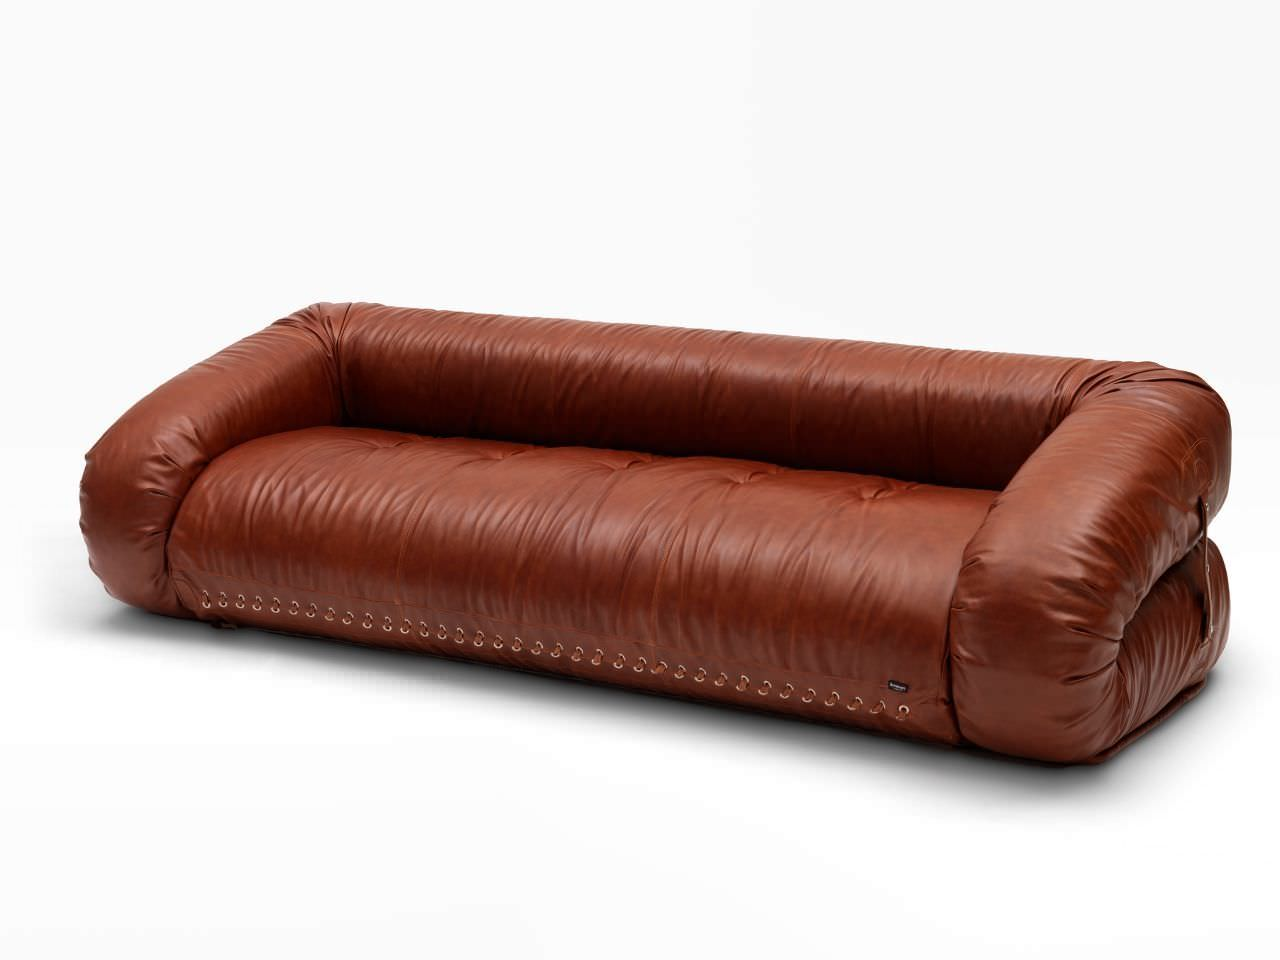 modern leather sofa bed. Perfect Leather Sofa Bed  Contemporary Leather 3seater  ANFIBIO By Alessandro Becchi On Modern Leather Sofa Bed